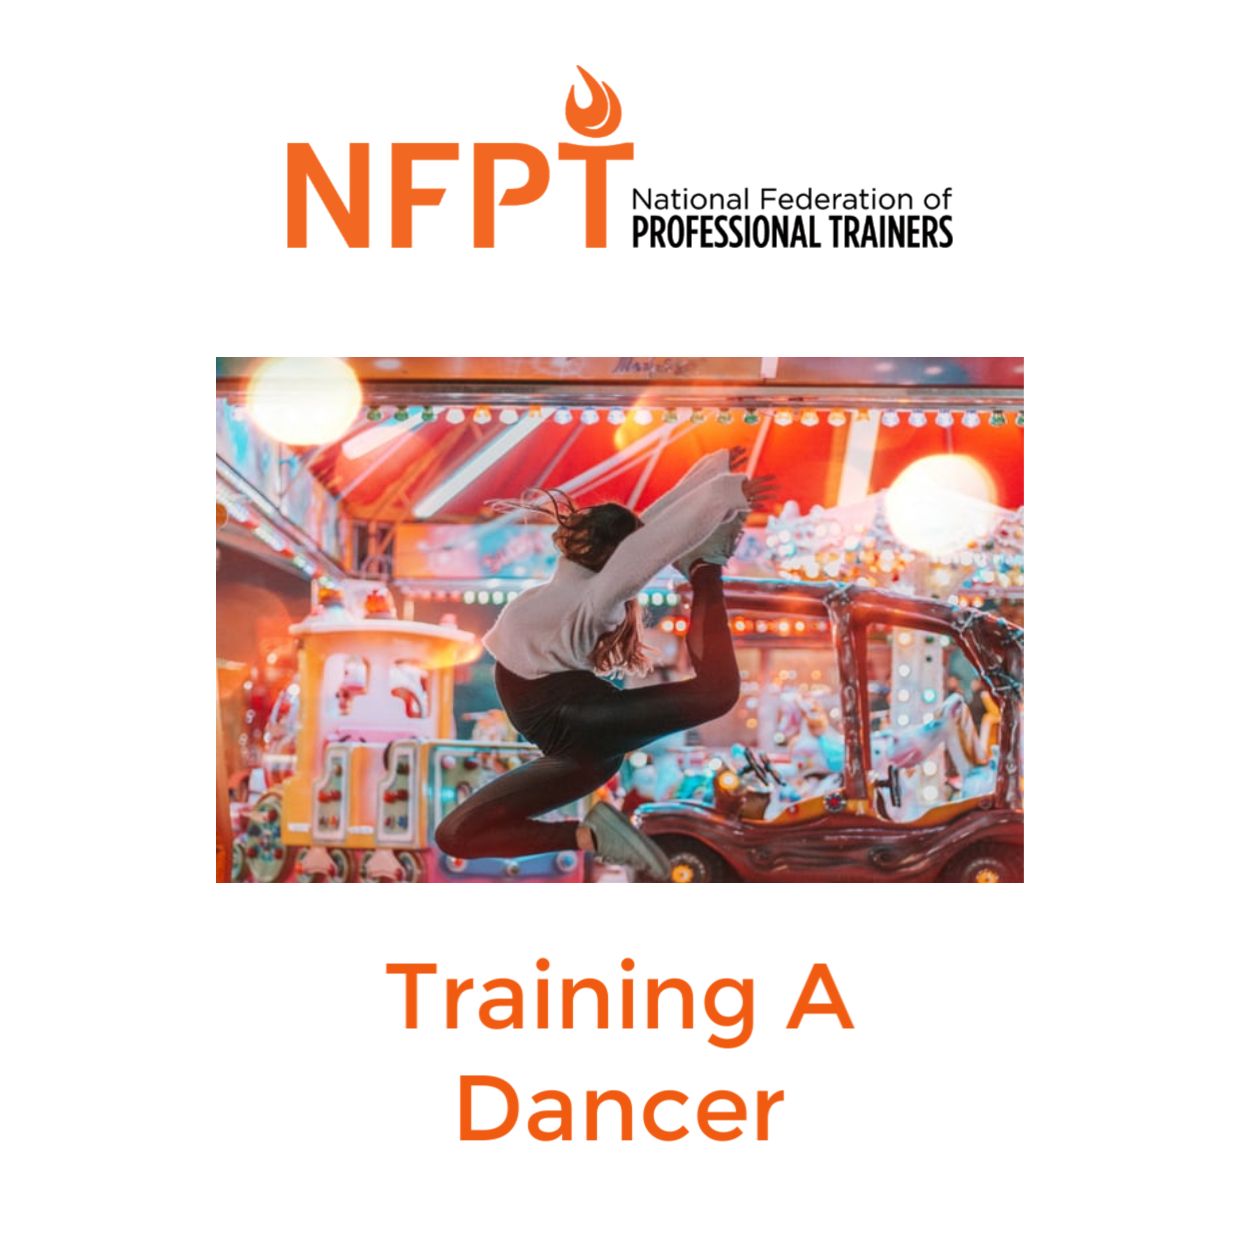 Training A Dancer